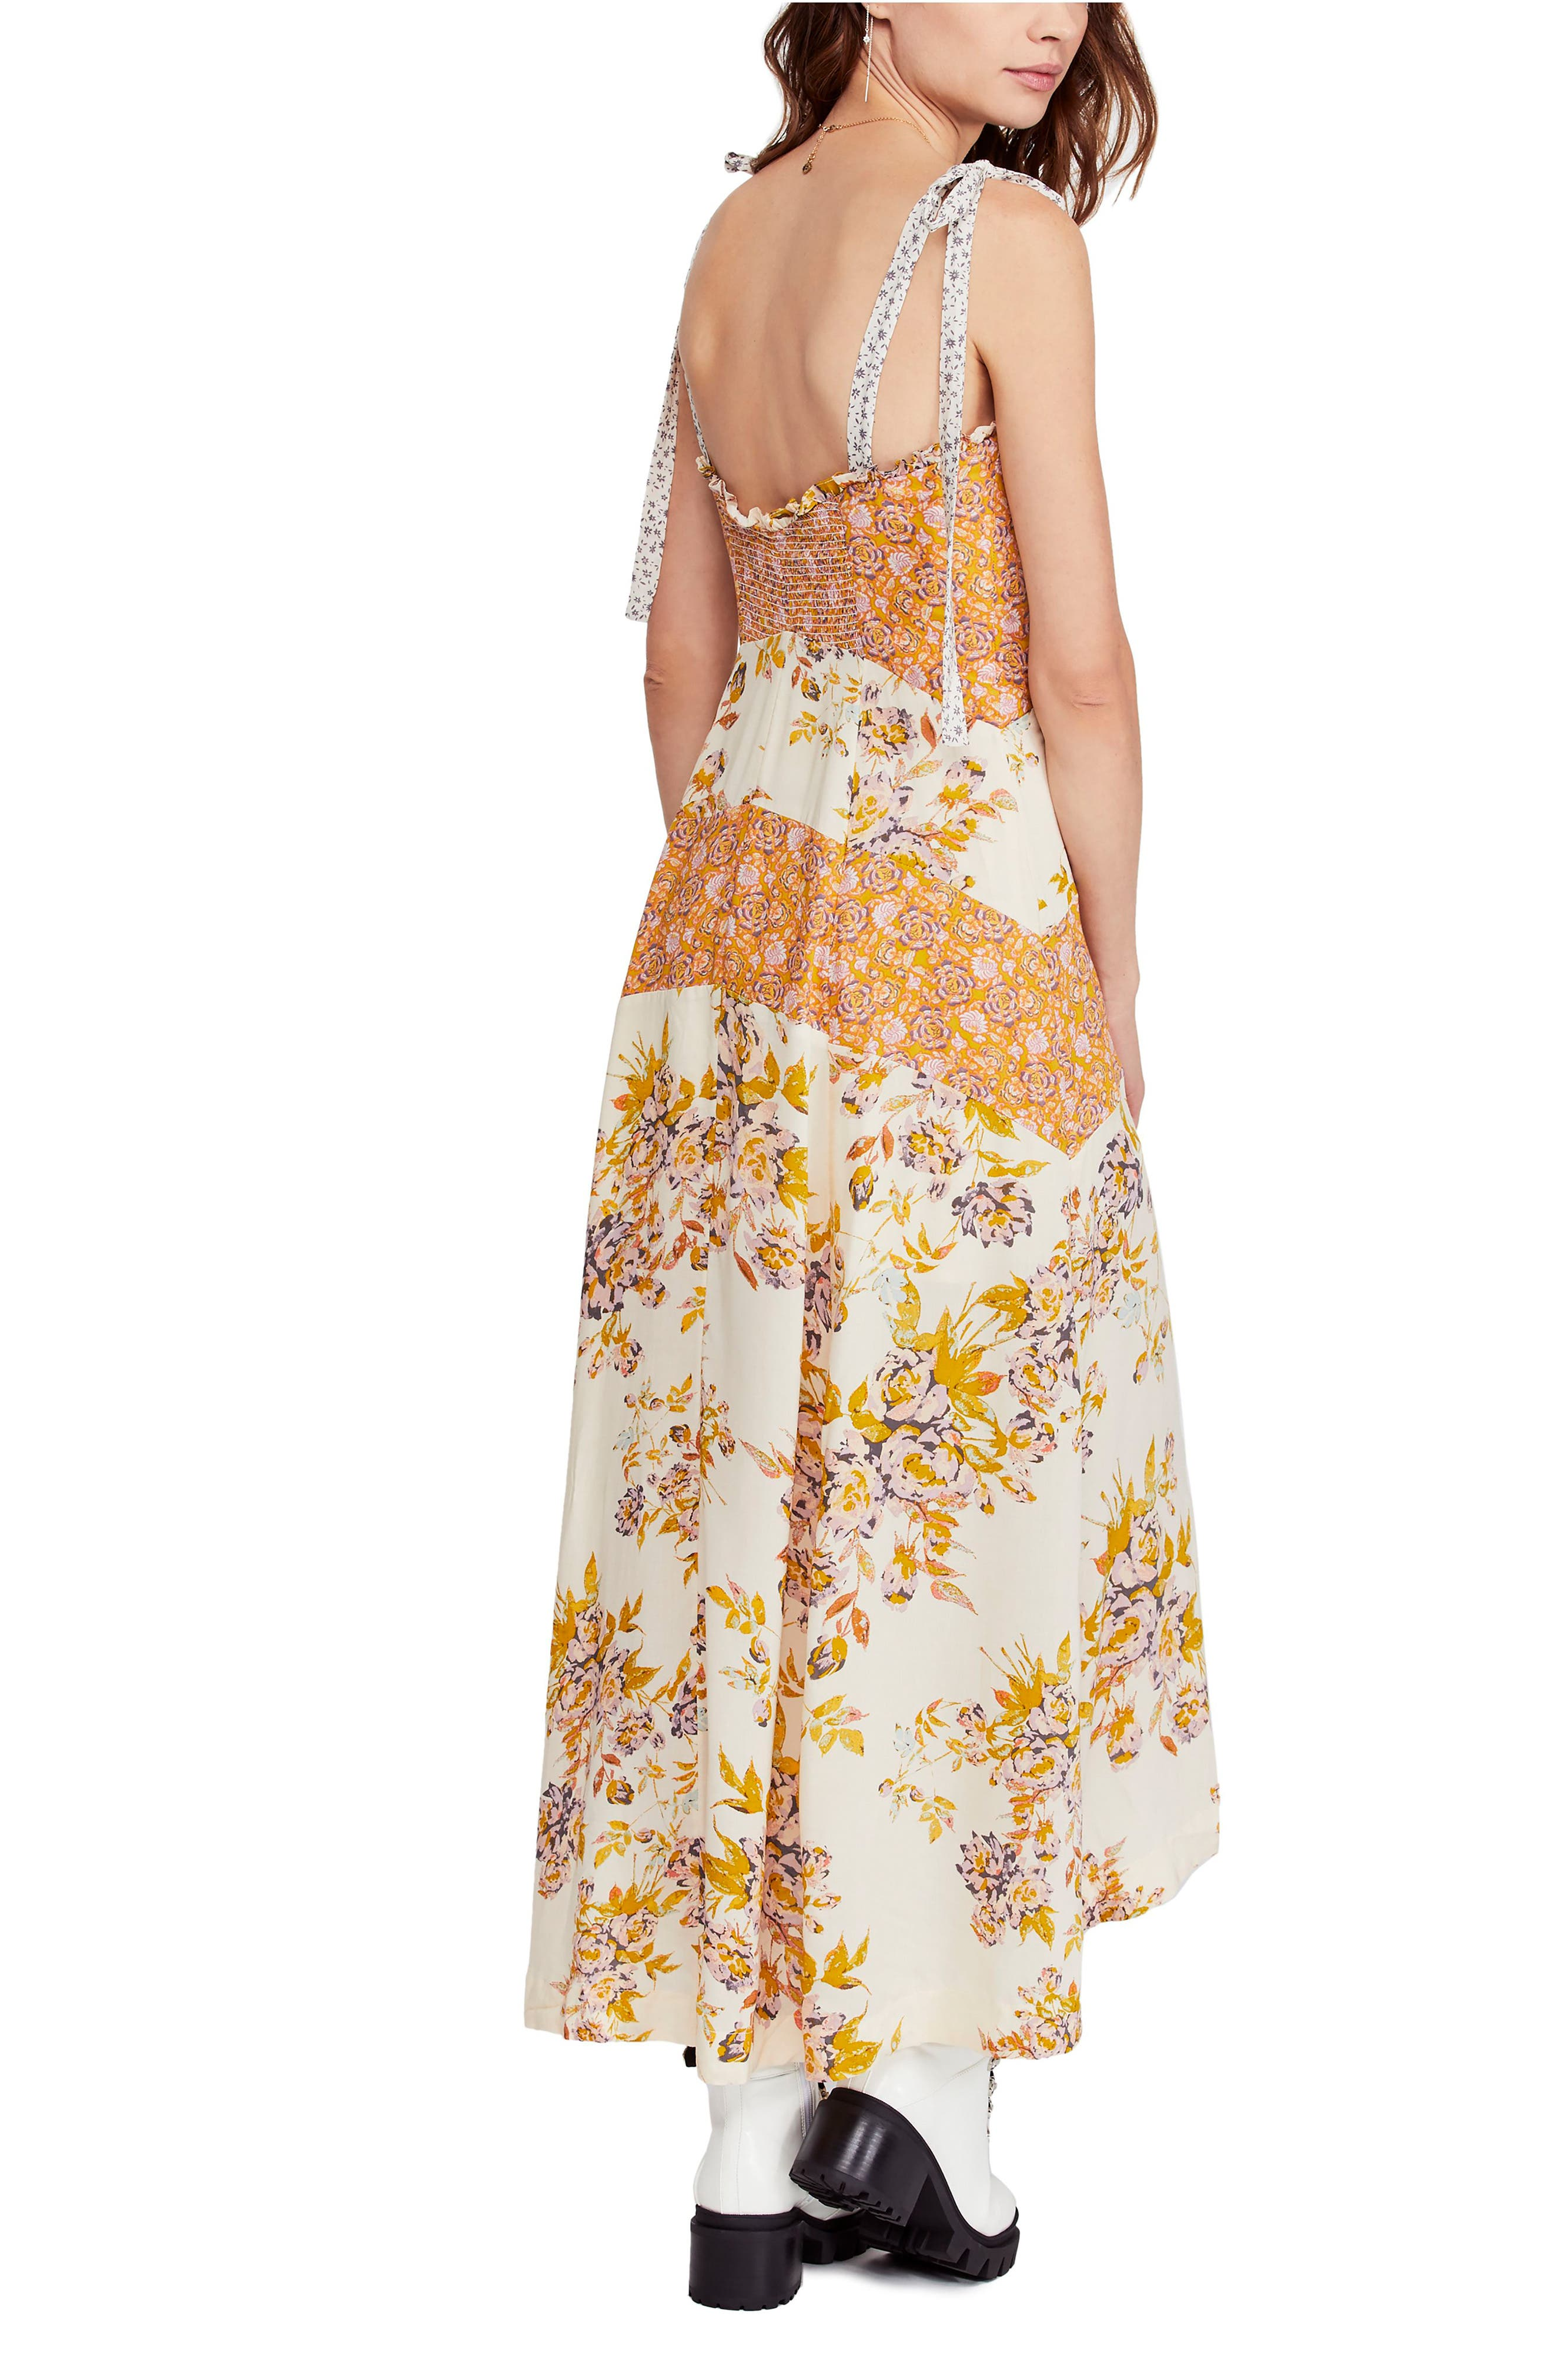 FREE PEOPLE, Lover Boy Maxi Dress, Alternate thumbnail 2, color, NEUTRAL COMBO